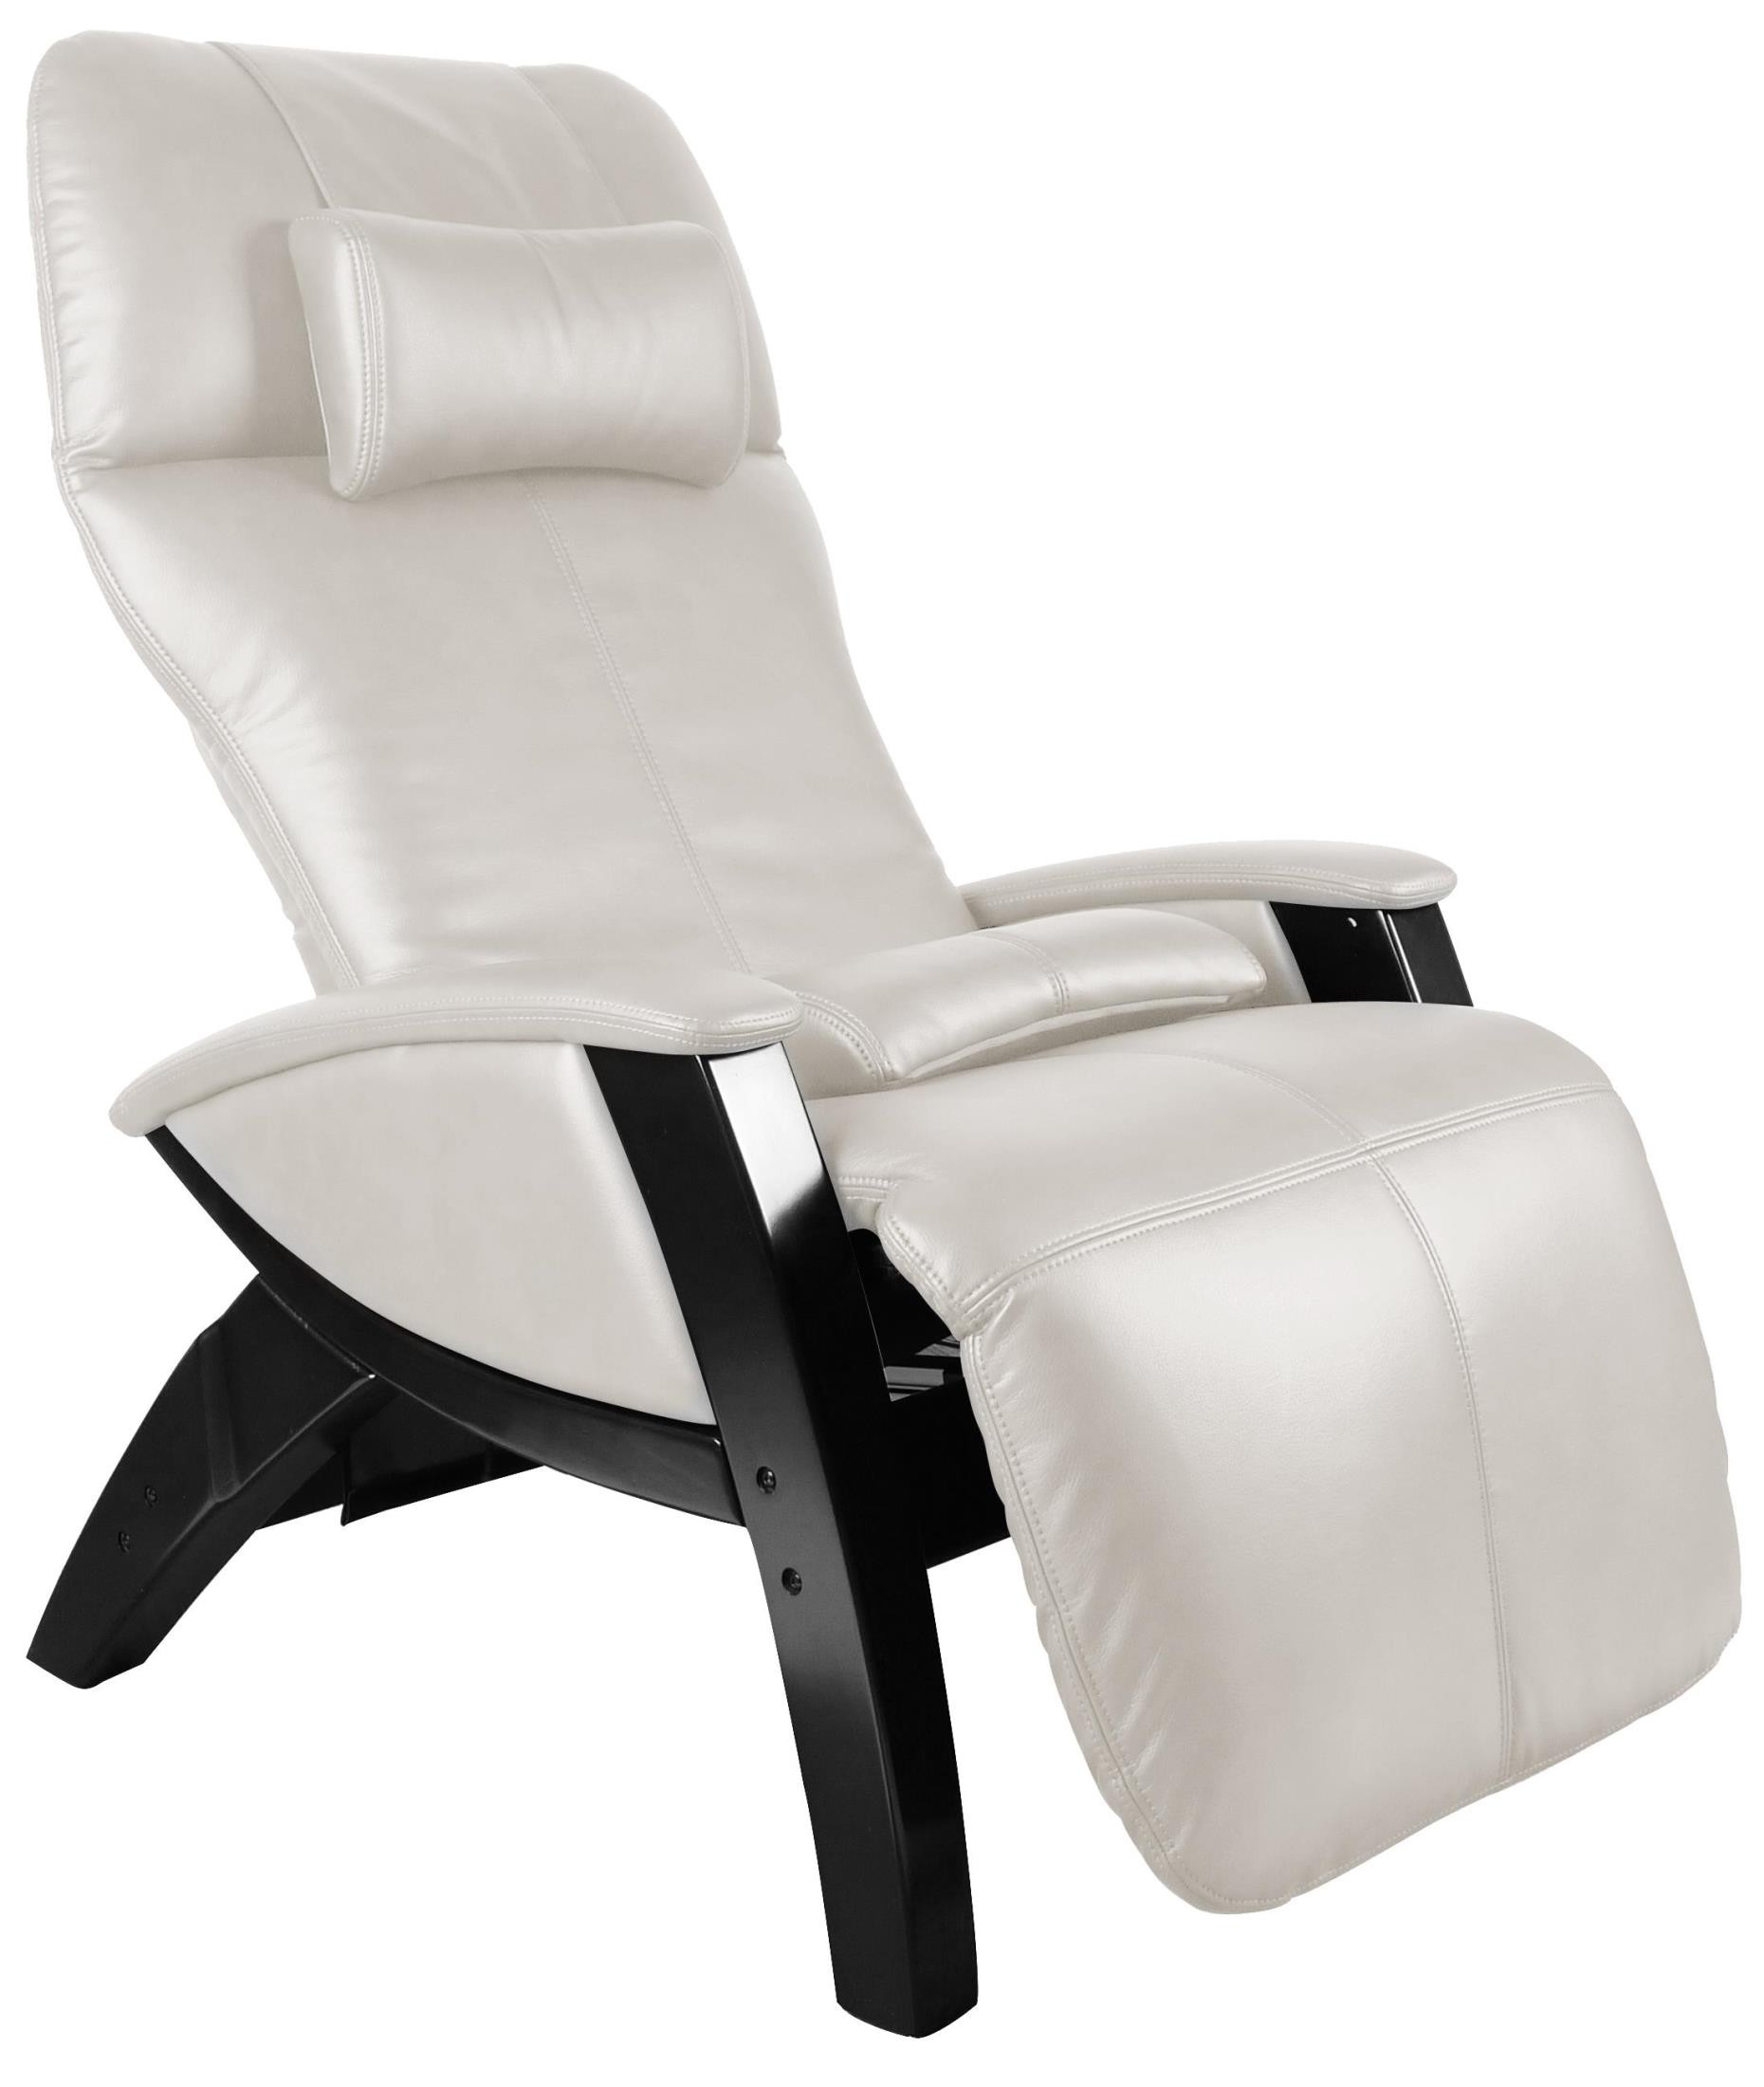 lusso chocolate recliners zero gravity recliner backstore leather an chair htm svago error sv occurred